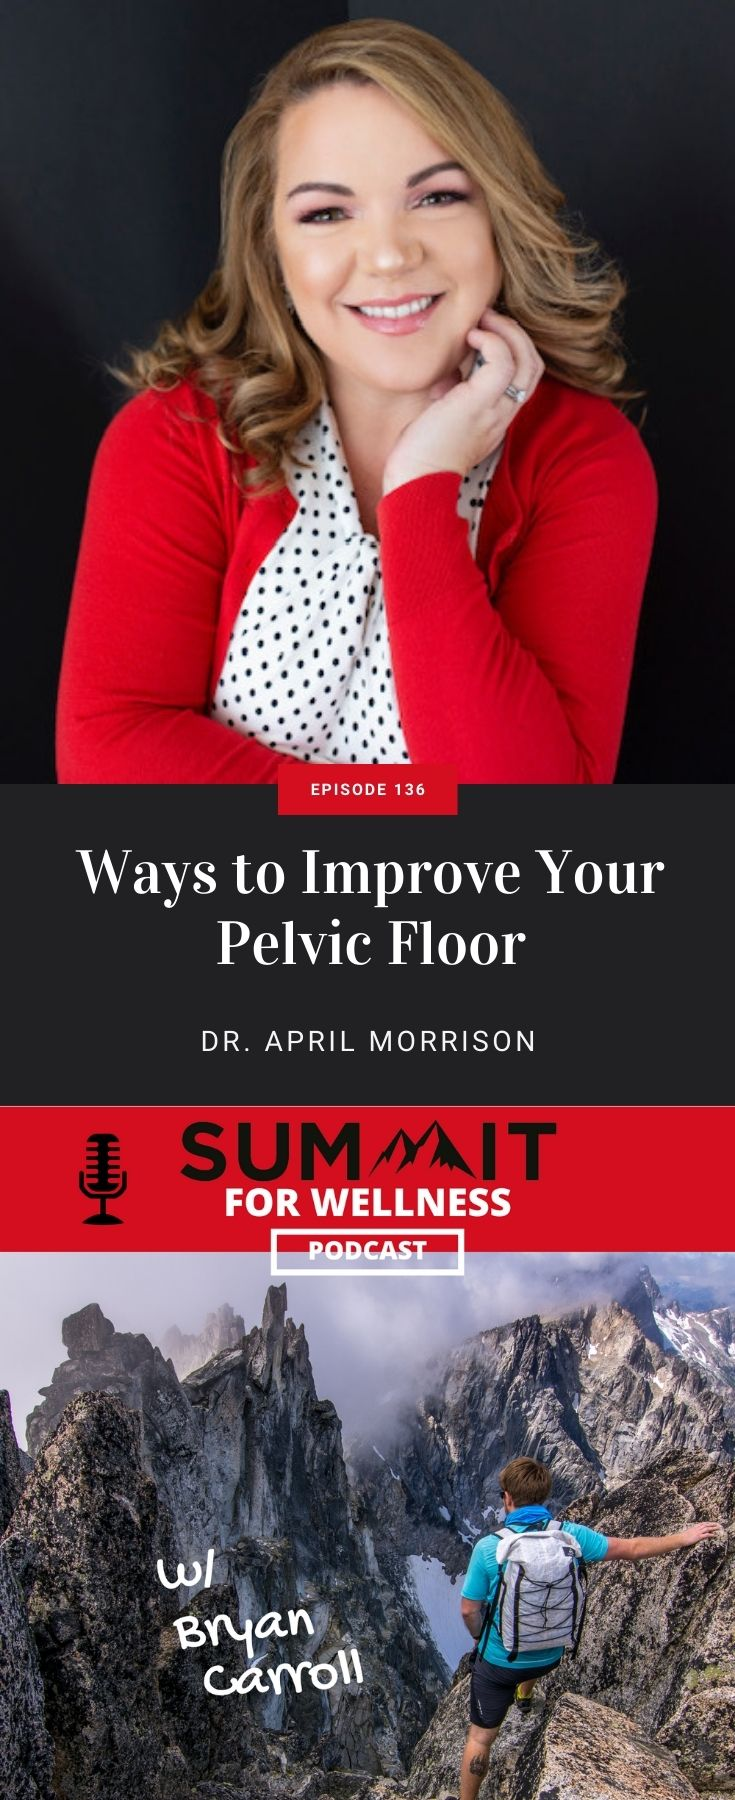 Learn how to take care of your pelvic floor from April Morrison